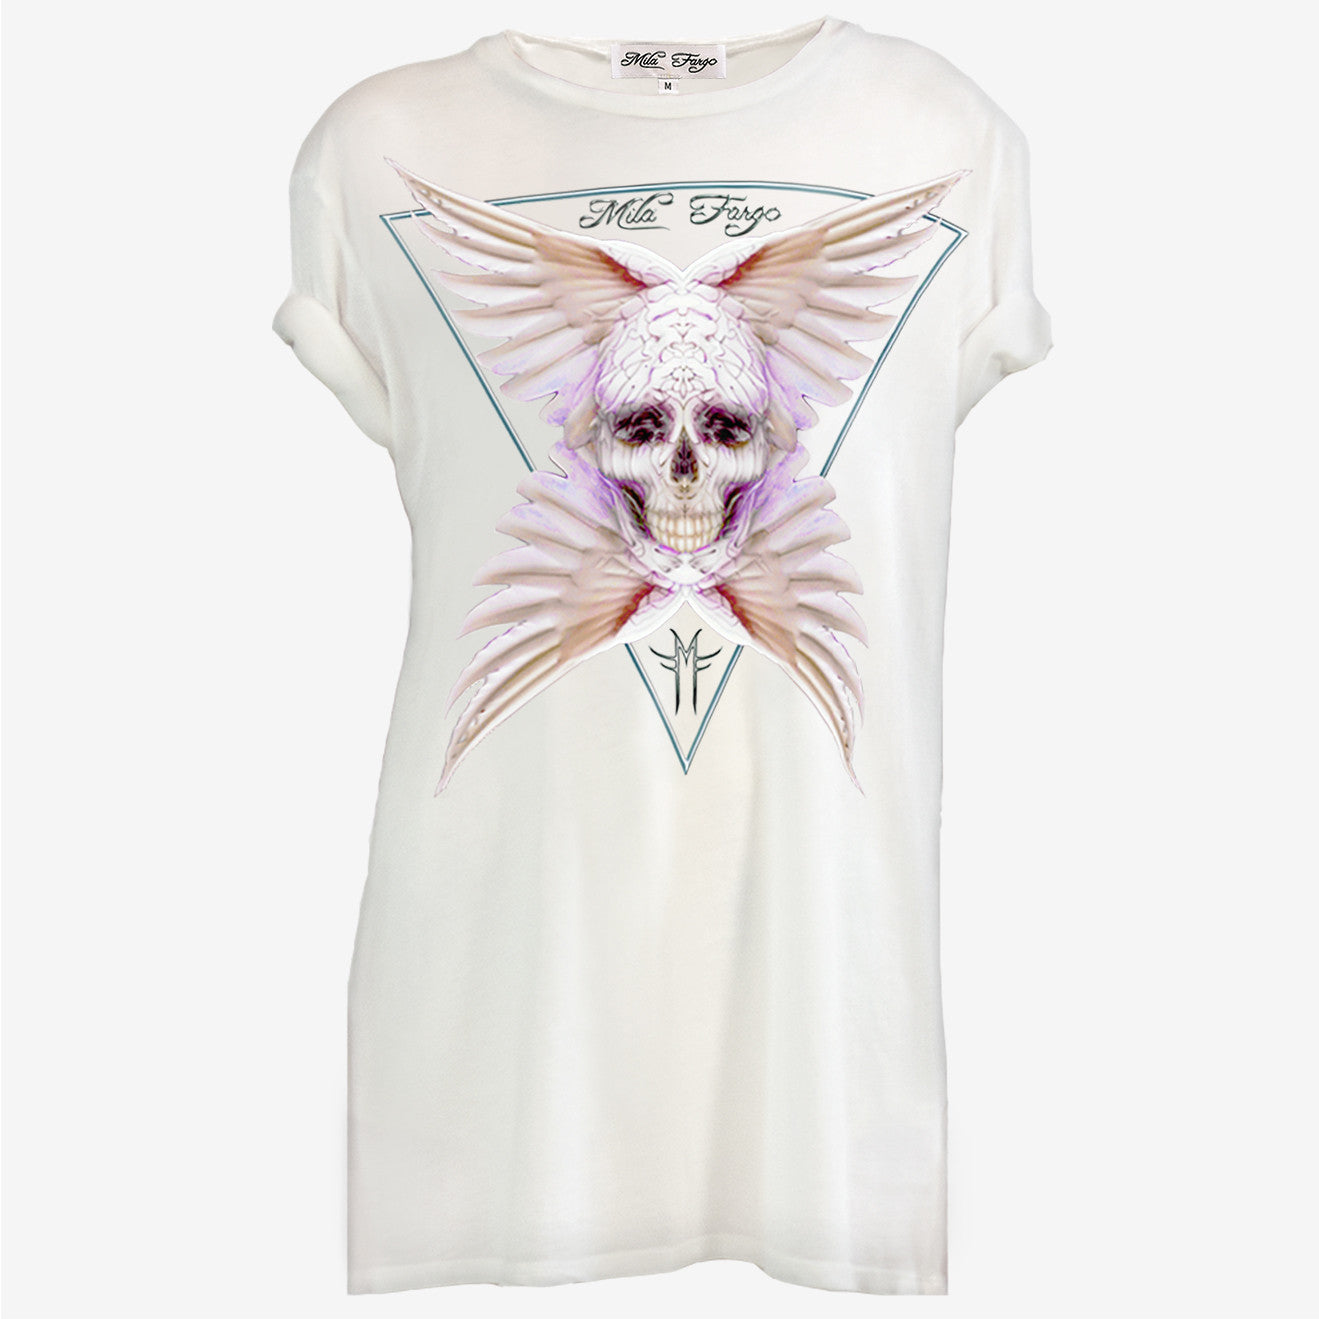 ANGEL ROSE FEATHER SKULL T-SHIRT | White Mila Fargo T shirt